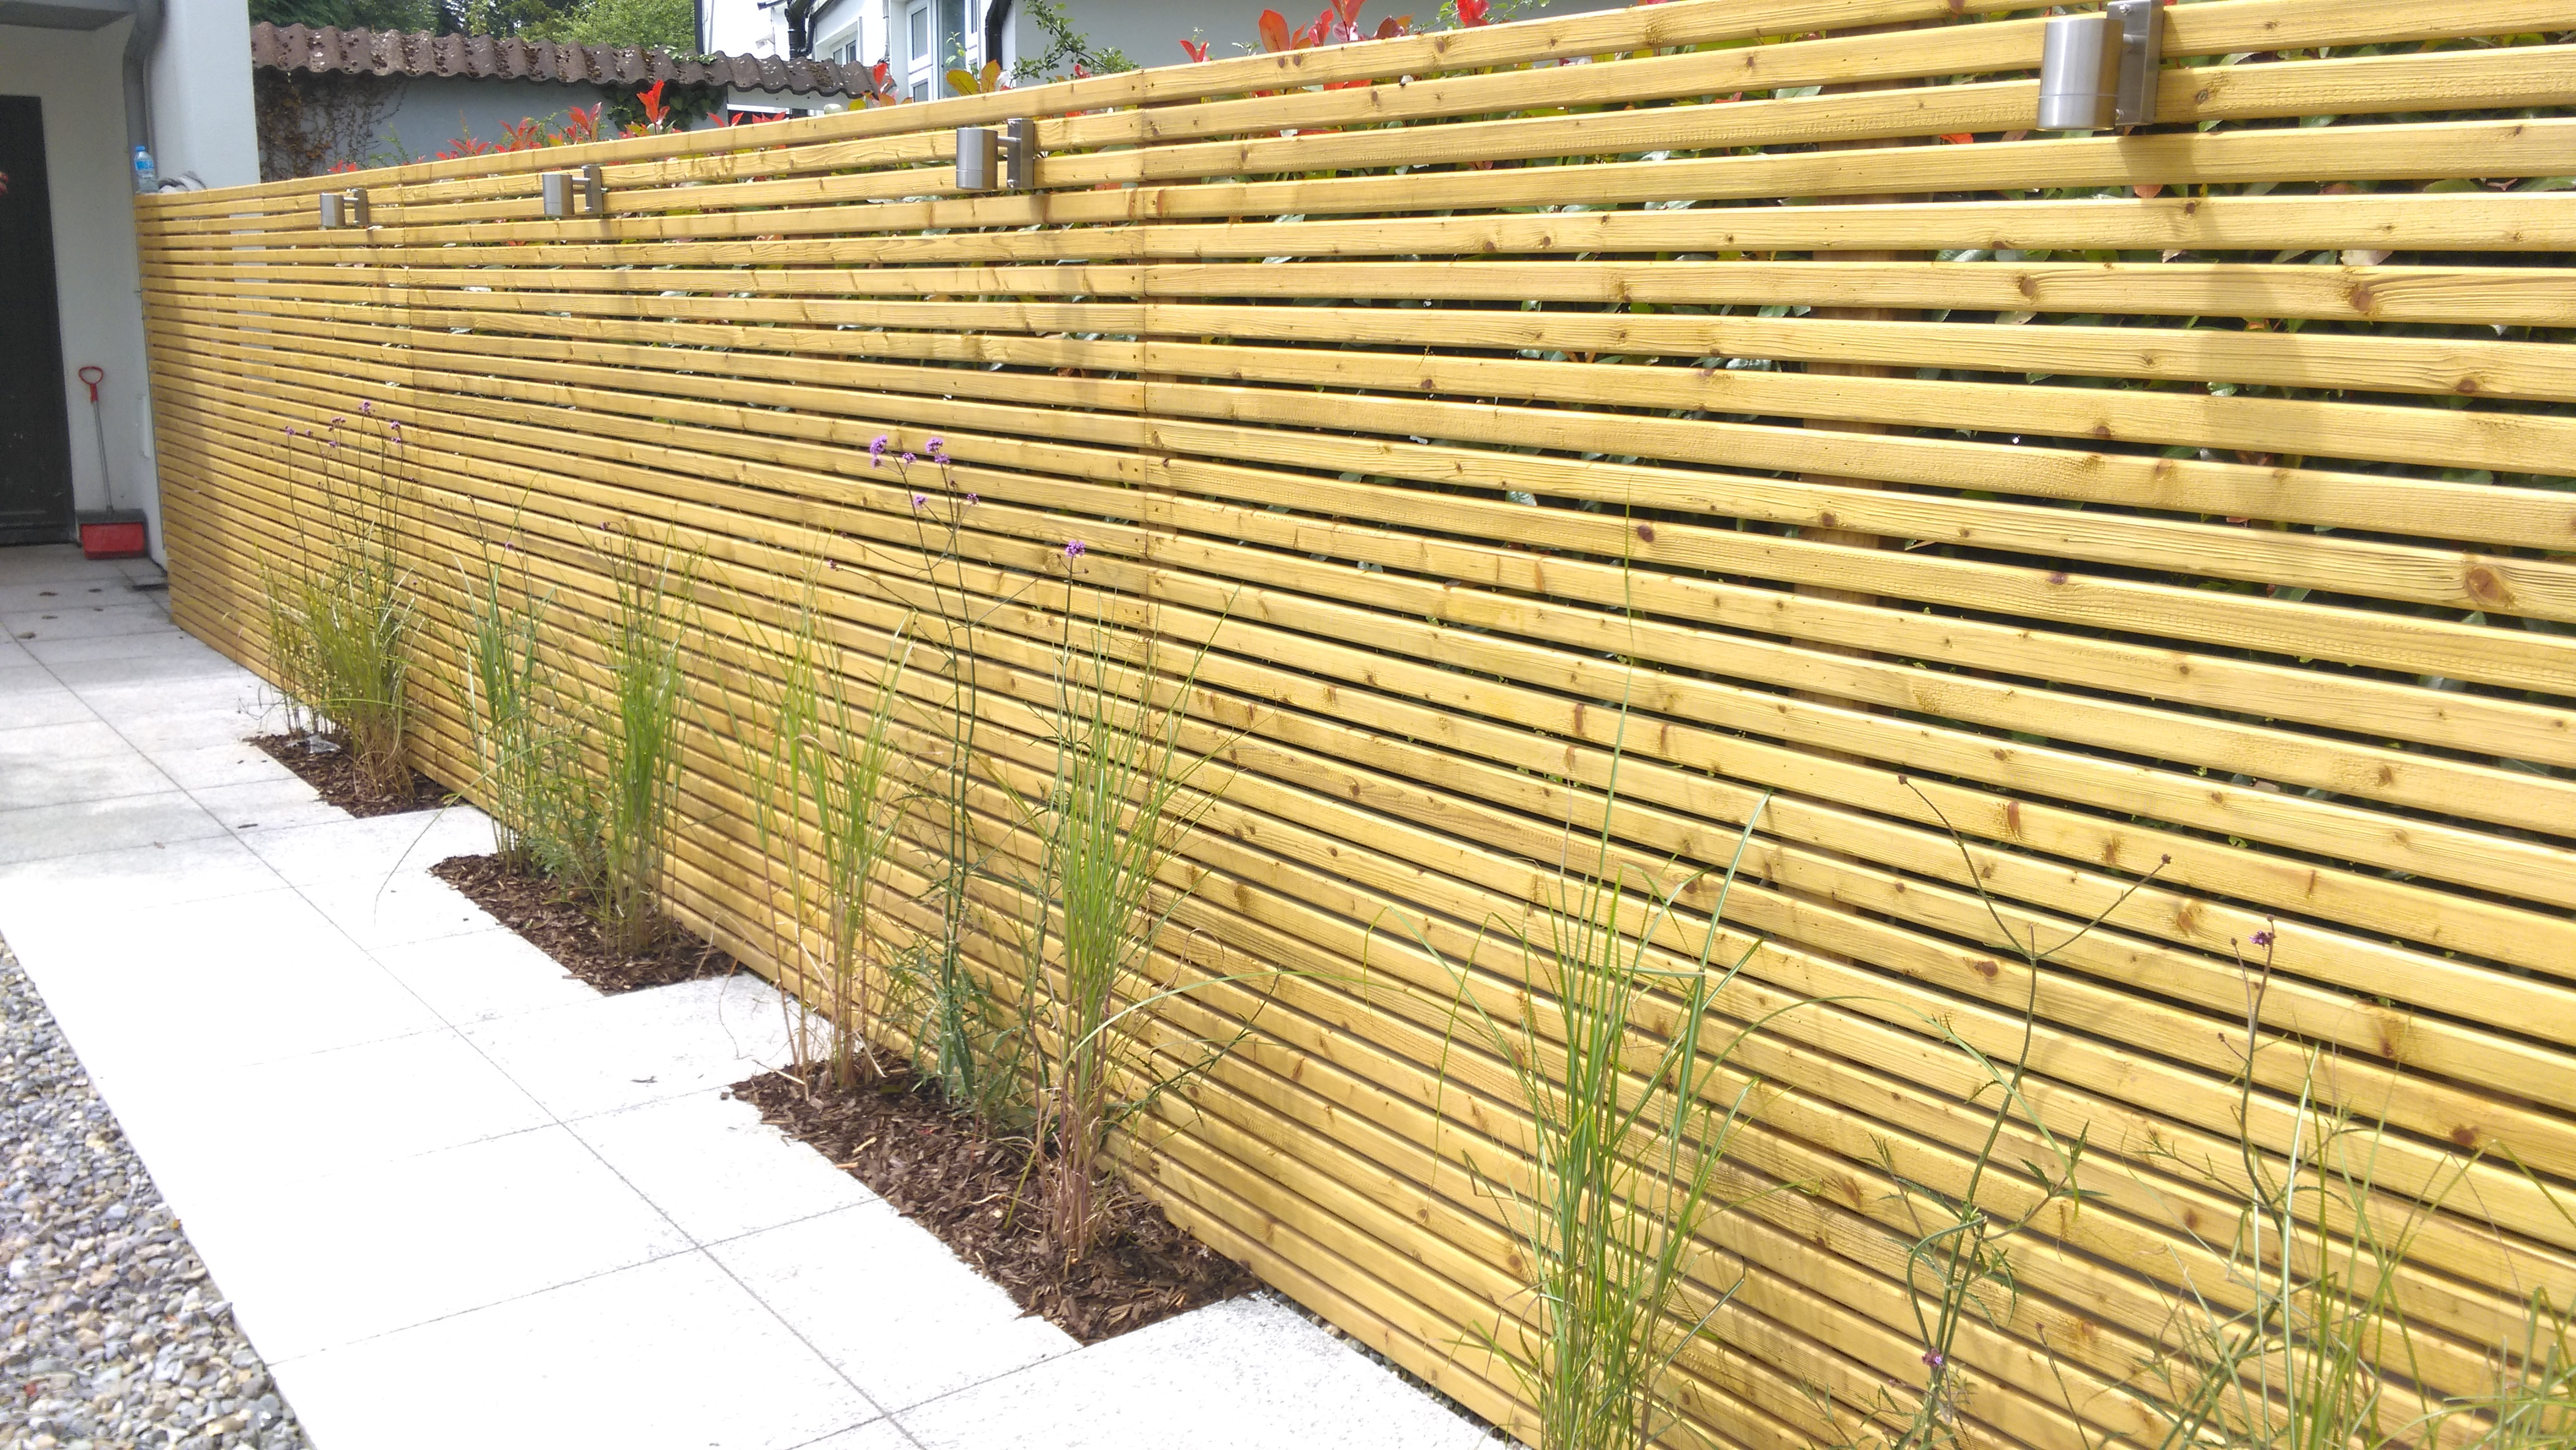 Landscape also Boundary Walls And Fencing also Sunrise Sunset furthermore Fine art photoghaphy by rohan reilly as well 3426546118. on landscape design